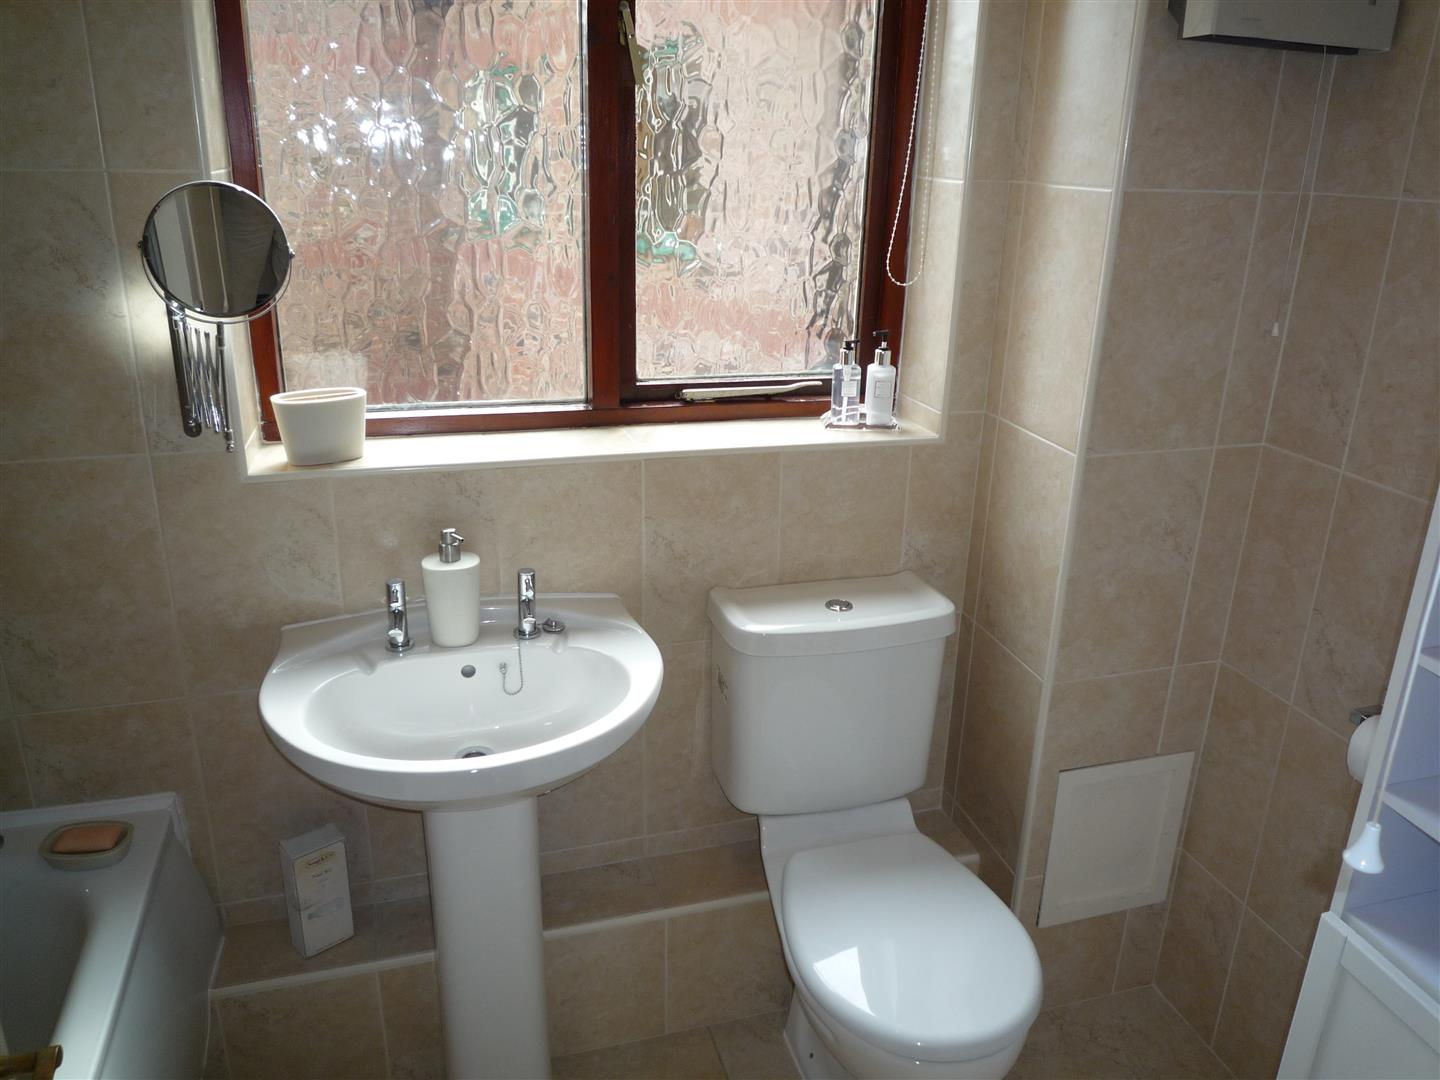 2 bed flat to rent in Long Sutton Spalding, PE12 9RL  - Property Image 5